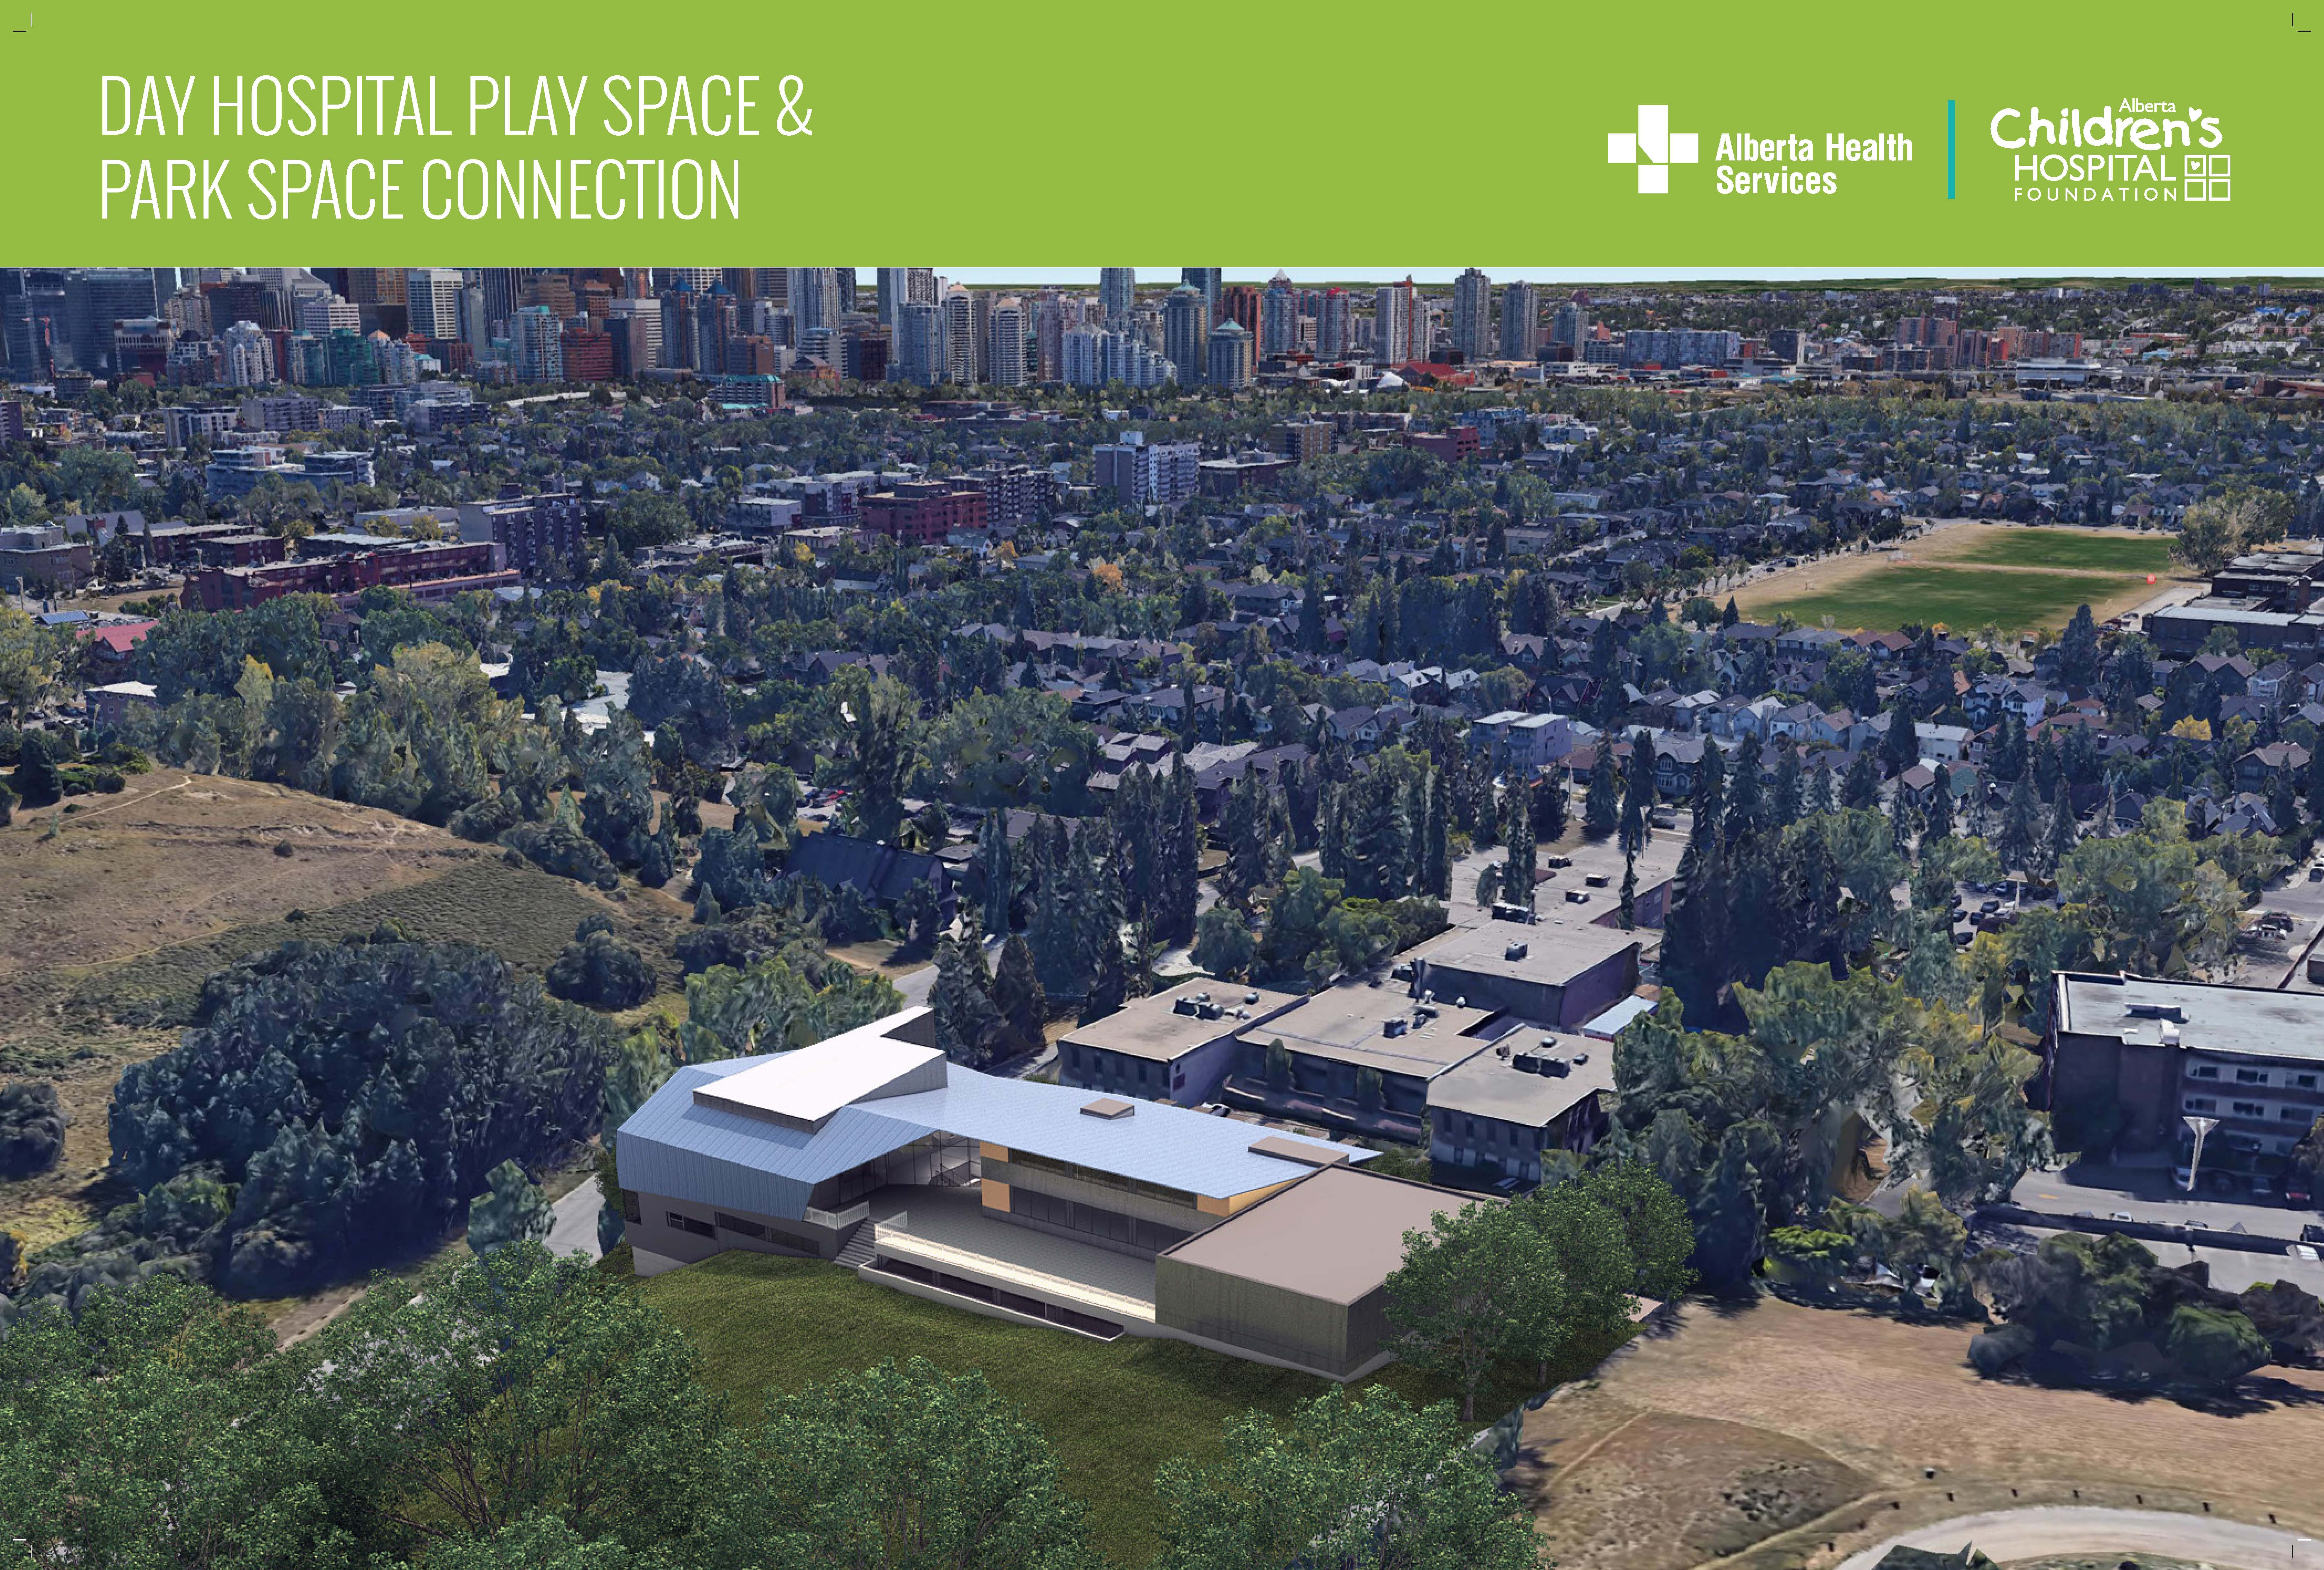 Day hospital play space and park connection